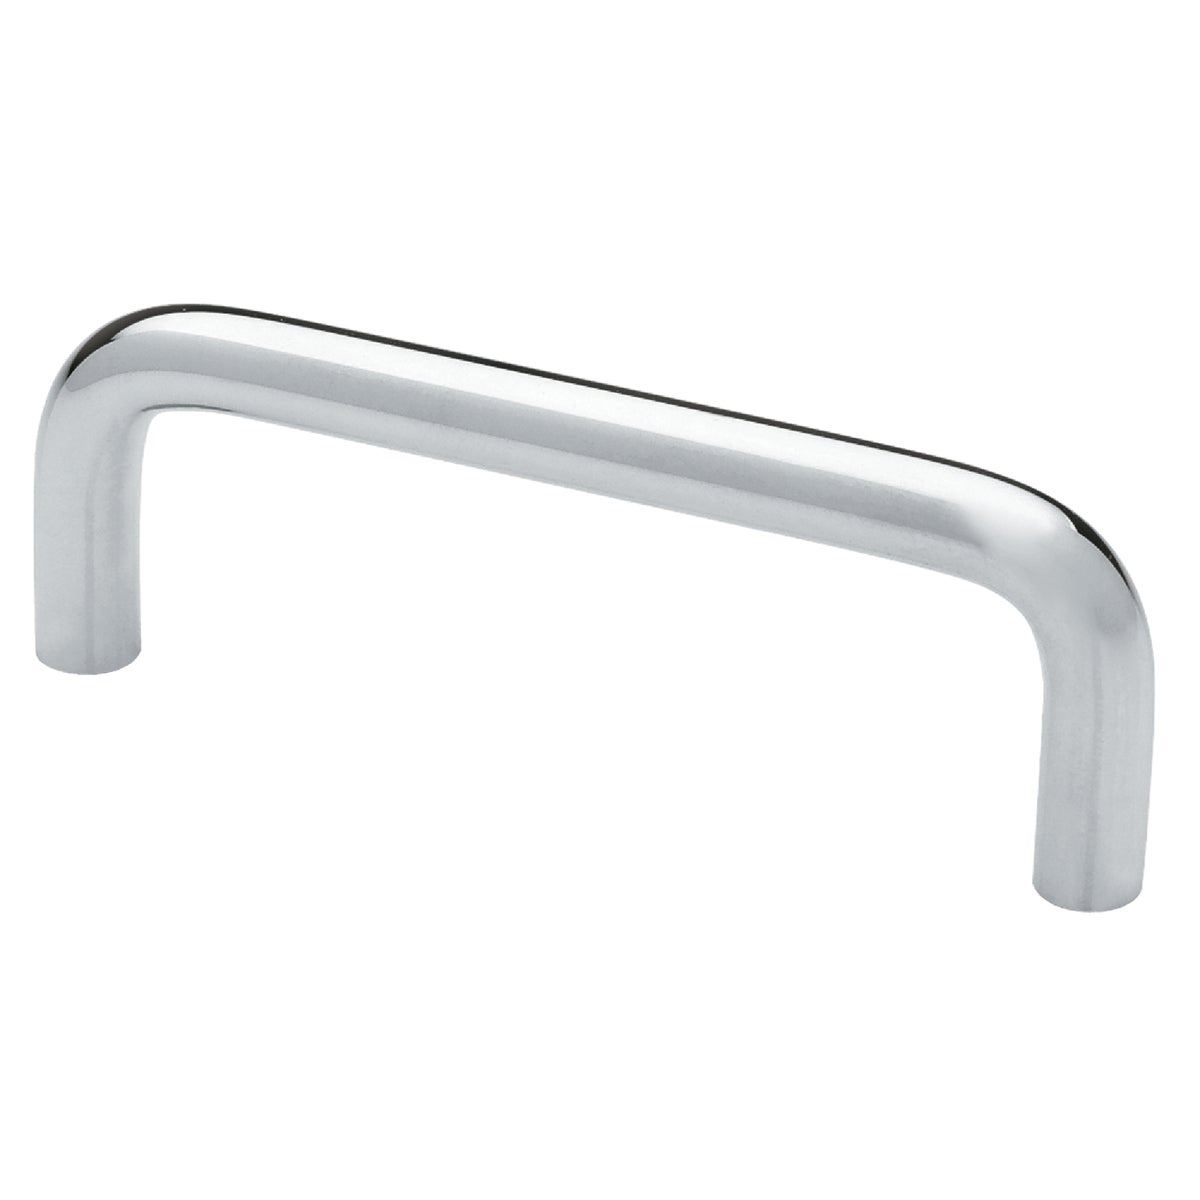 "3"" CHROME PULL - 34226 by Laurey Co"